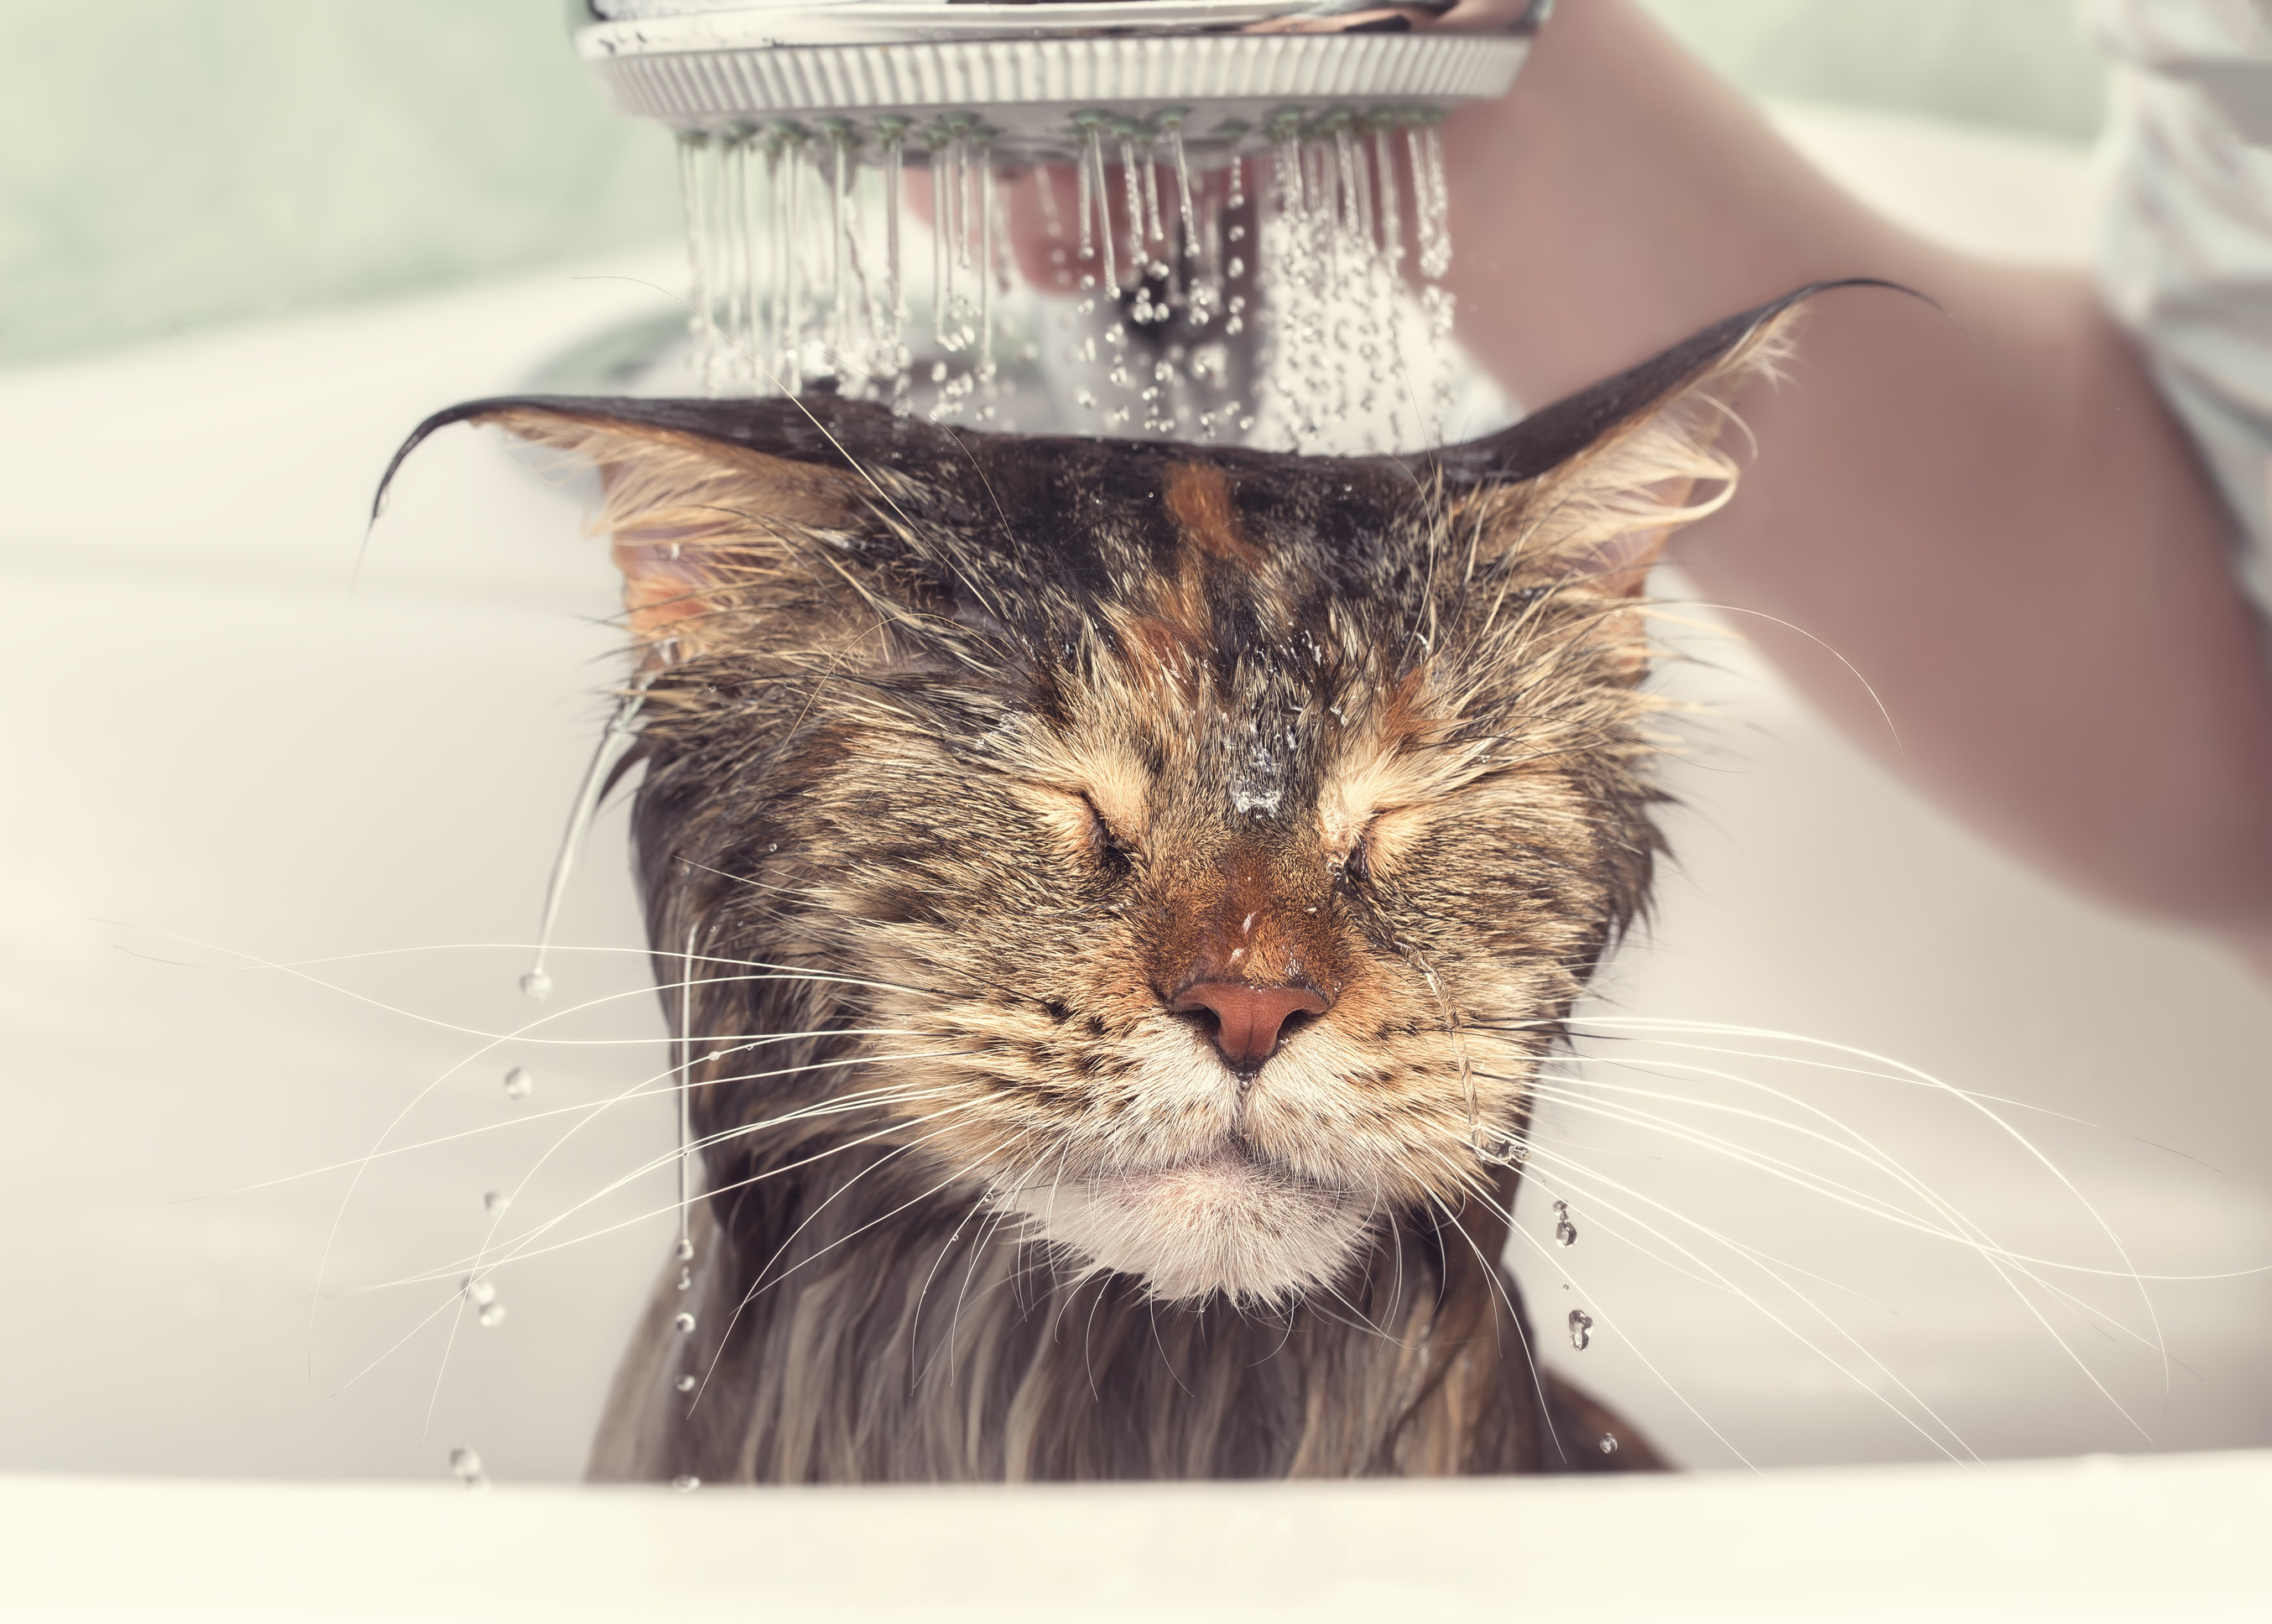 eco-friendly shampoos/flea treatments